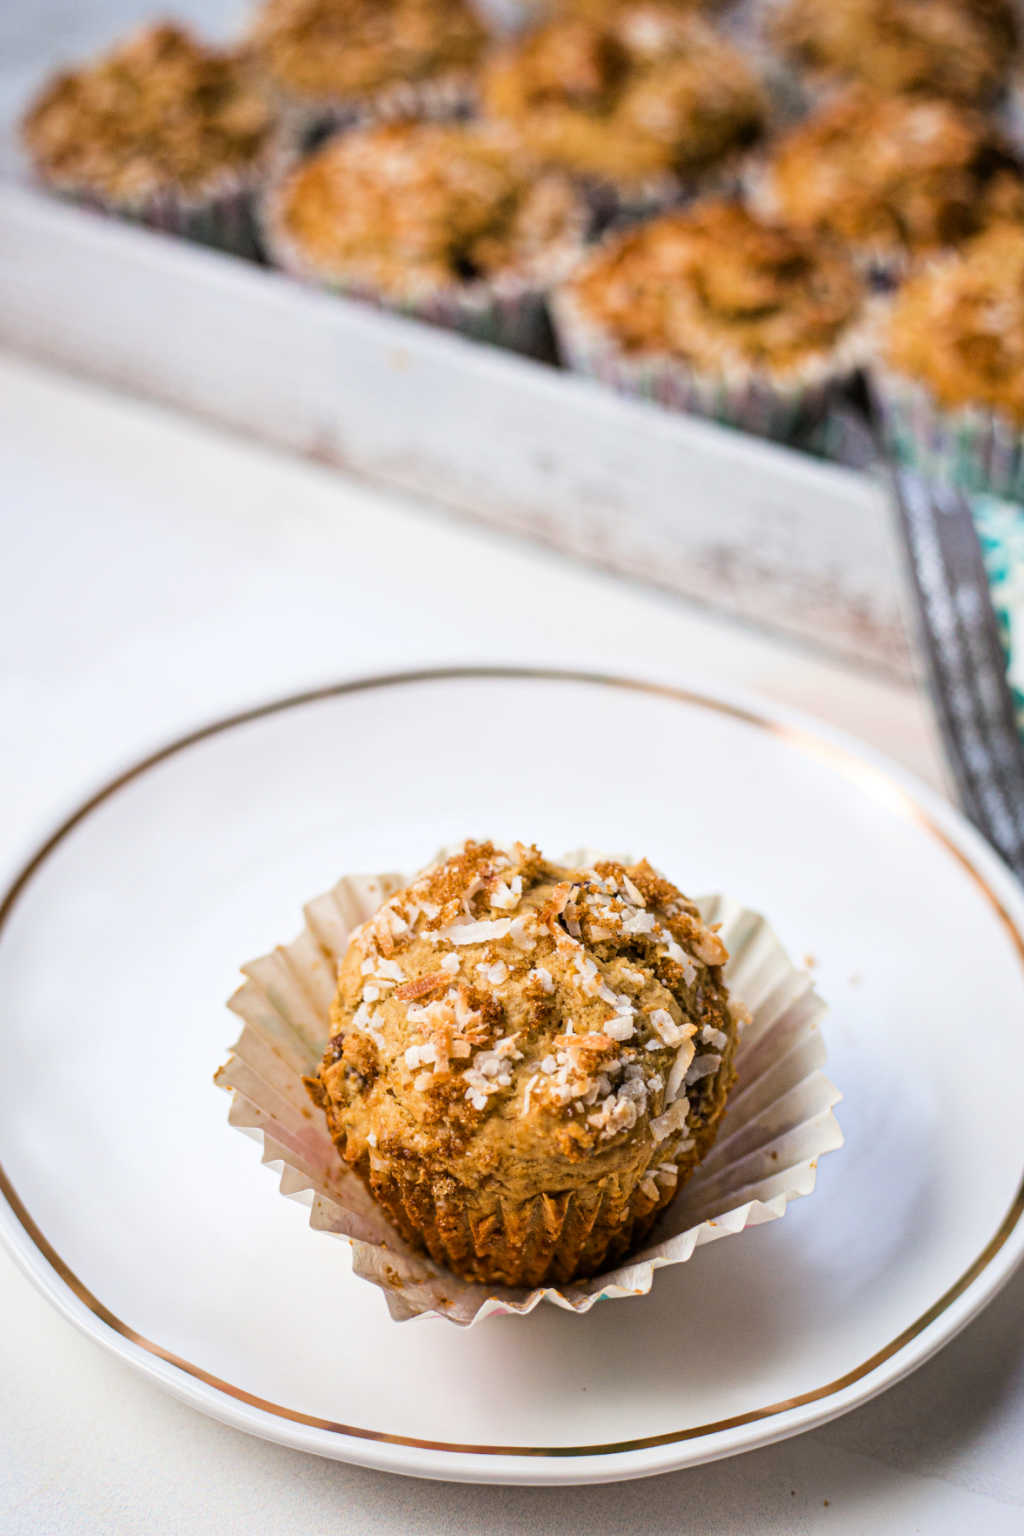 three chocolatey coconut banana muffins on a white plate on a table.